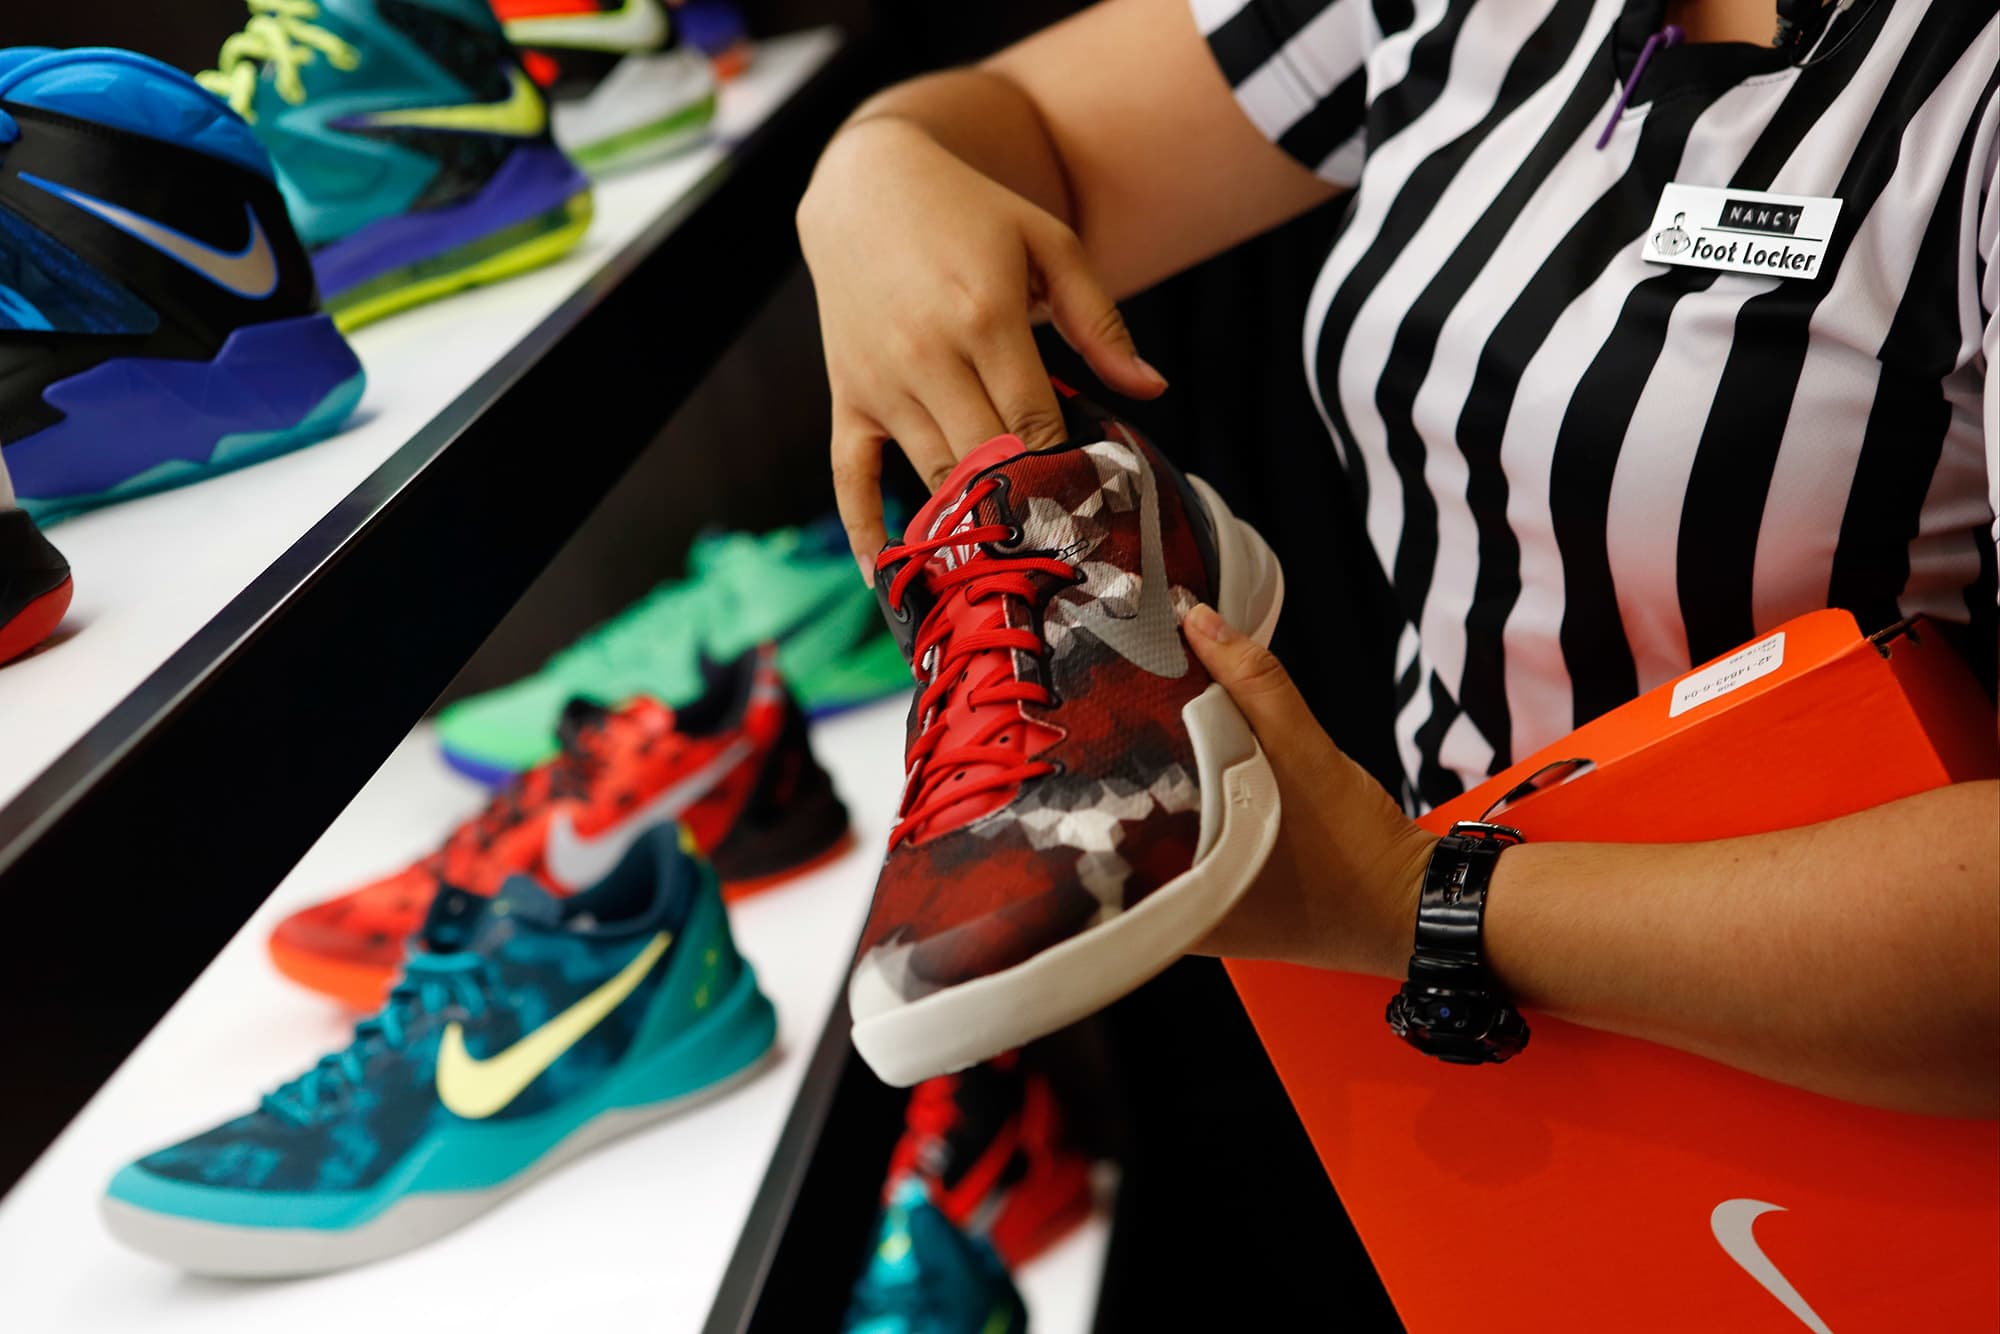 The cost of your shoes could jump thanks to the US-China trade war